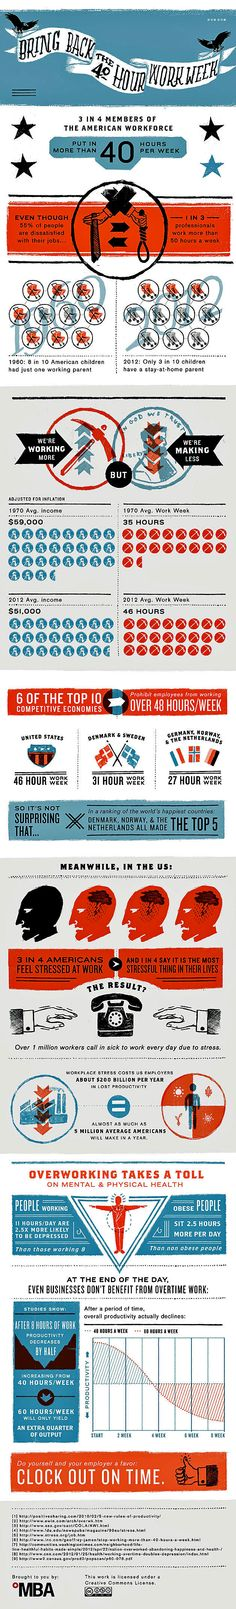 Why We Shouldn't Work More Than 40 Hours Per Week